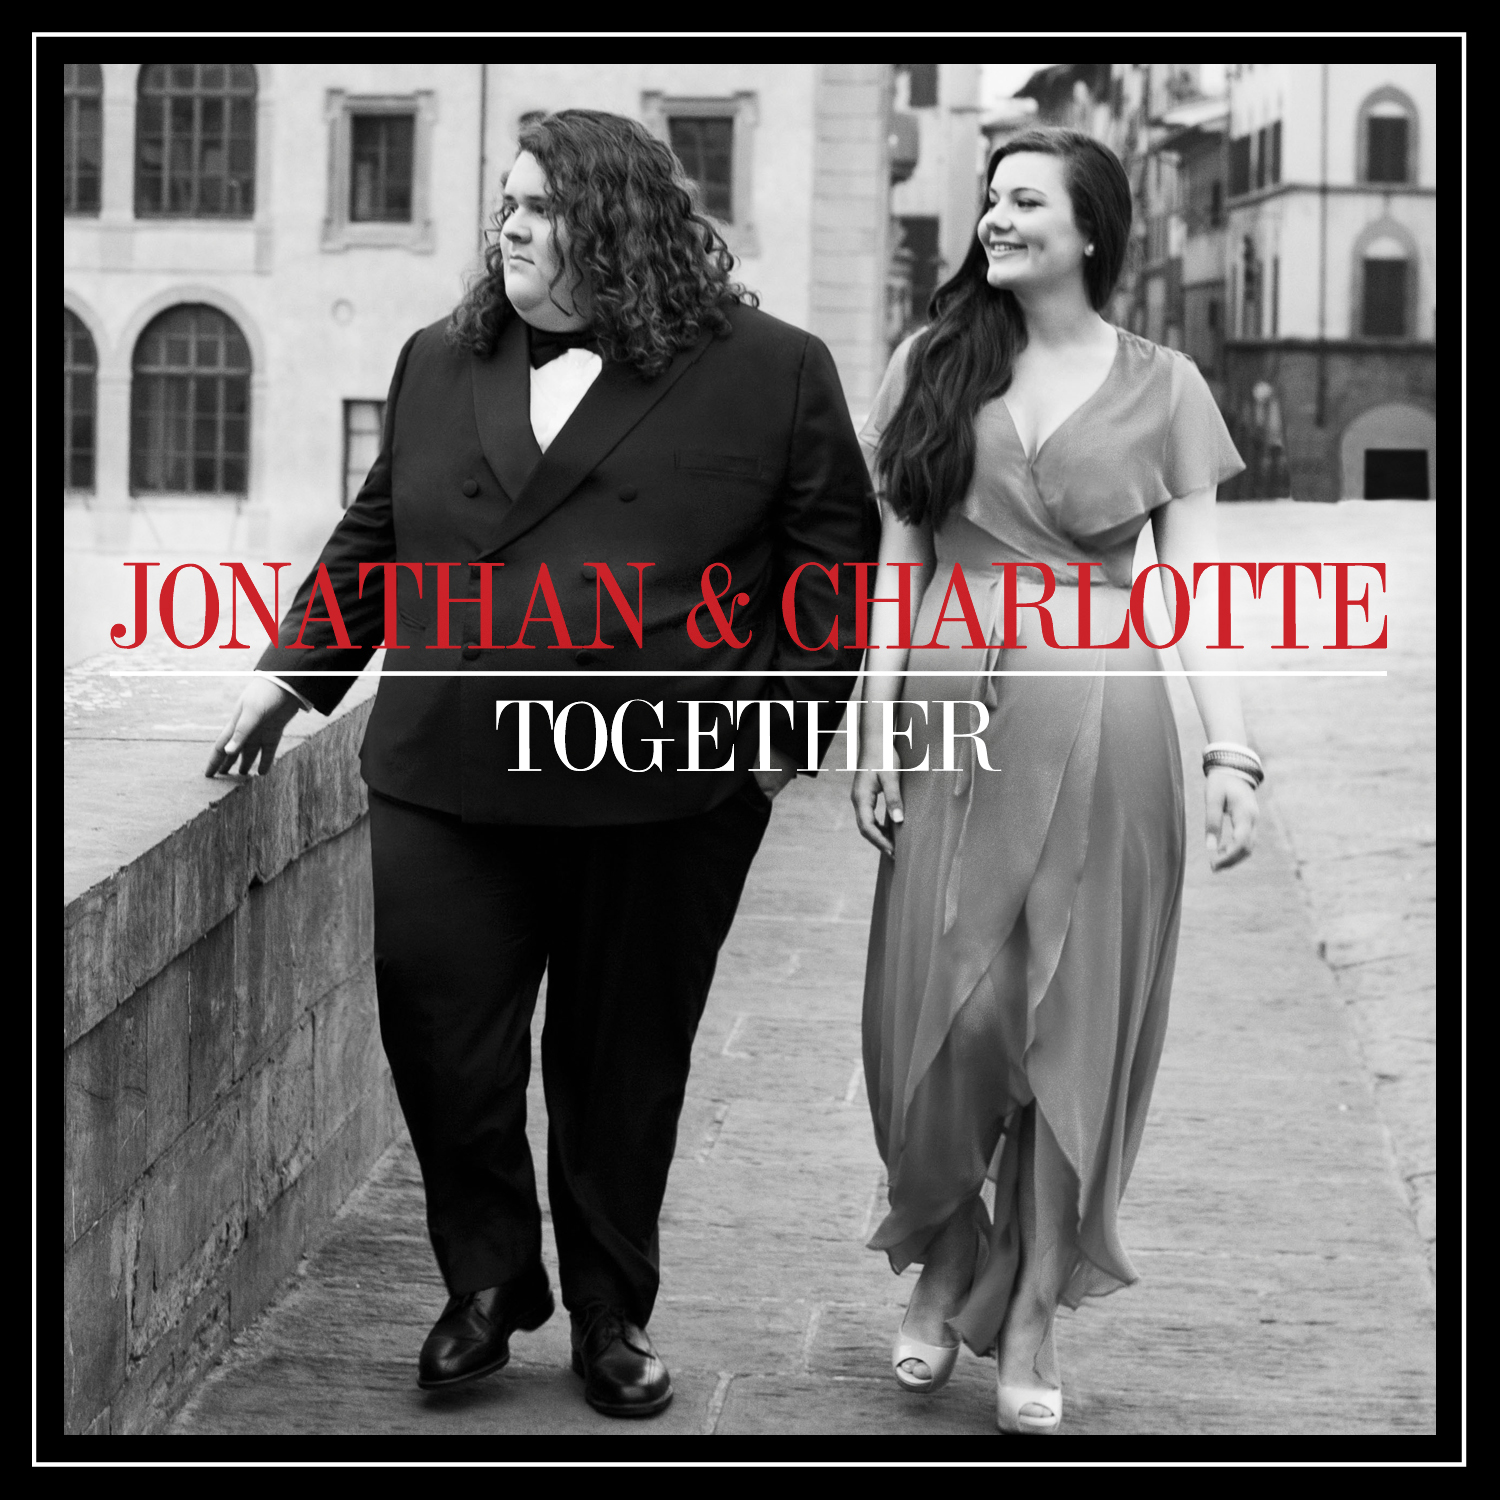 And Dating They Charlotte Are Jonathan